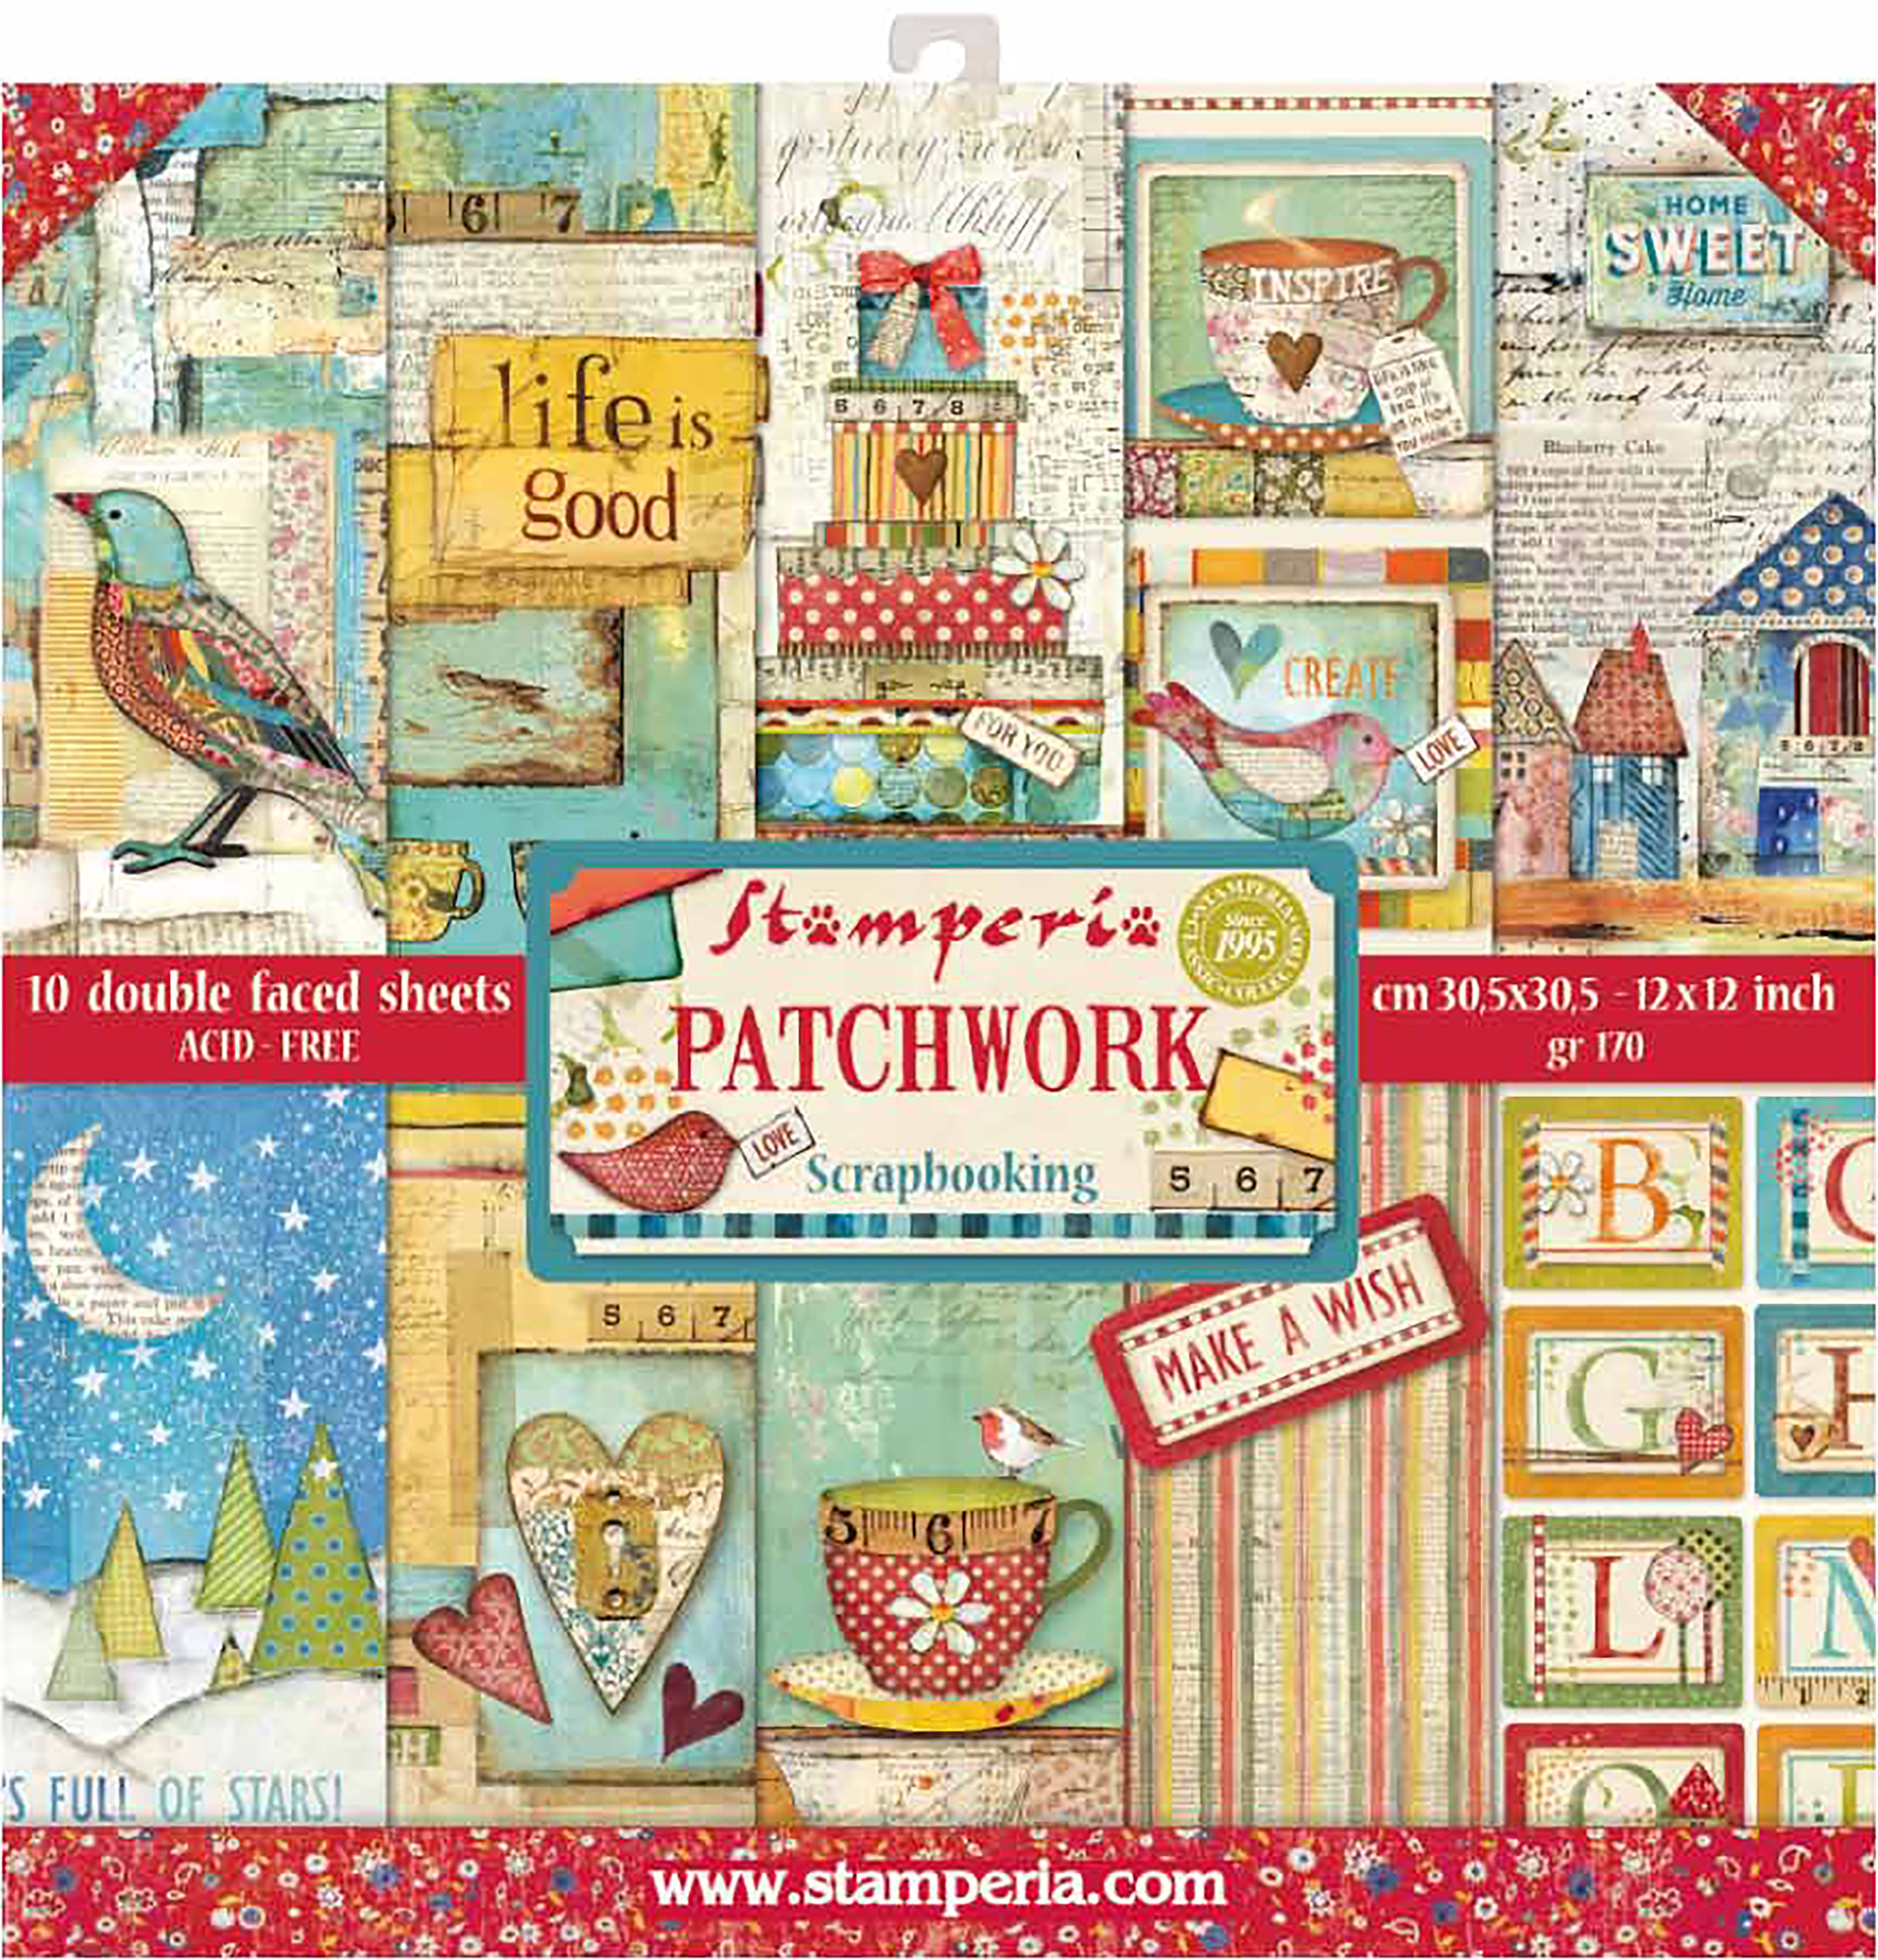 Stamperia Patchwork - 12x12 Paper Pack